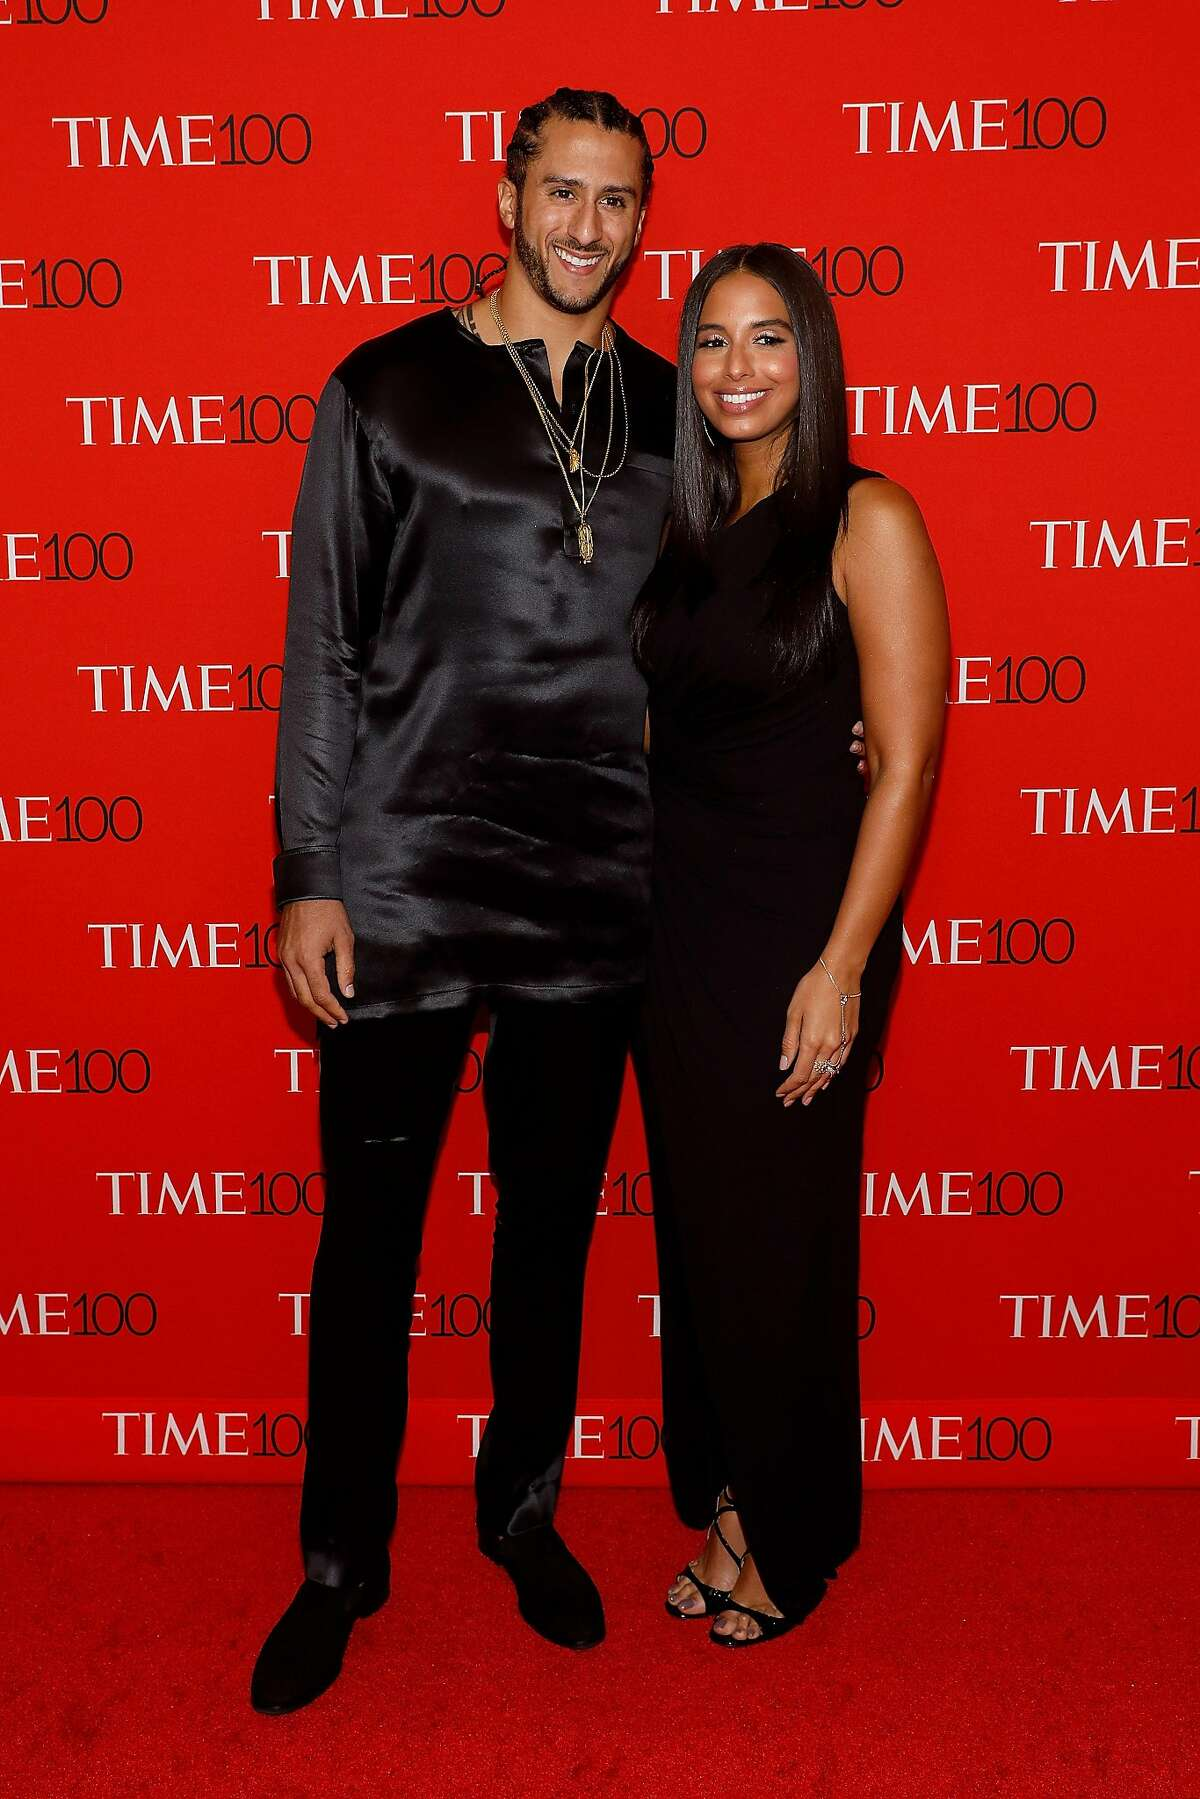 NEW YORK, NY - APRIL 25: Colin Kaepernick and Nessa Diab attend the 2017 Time 100 Gala at Jazz at Lincoln Center on April 25, 2017 in New York City. (Photo by Taylor Hill/FilmMagic)